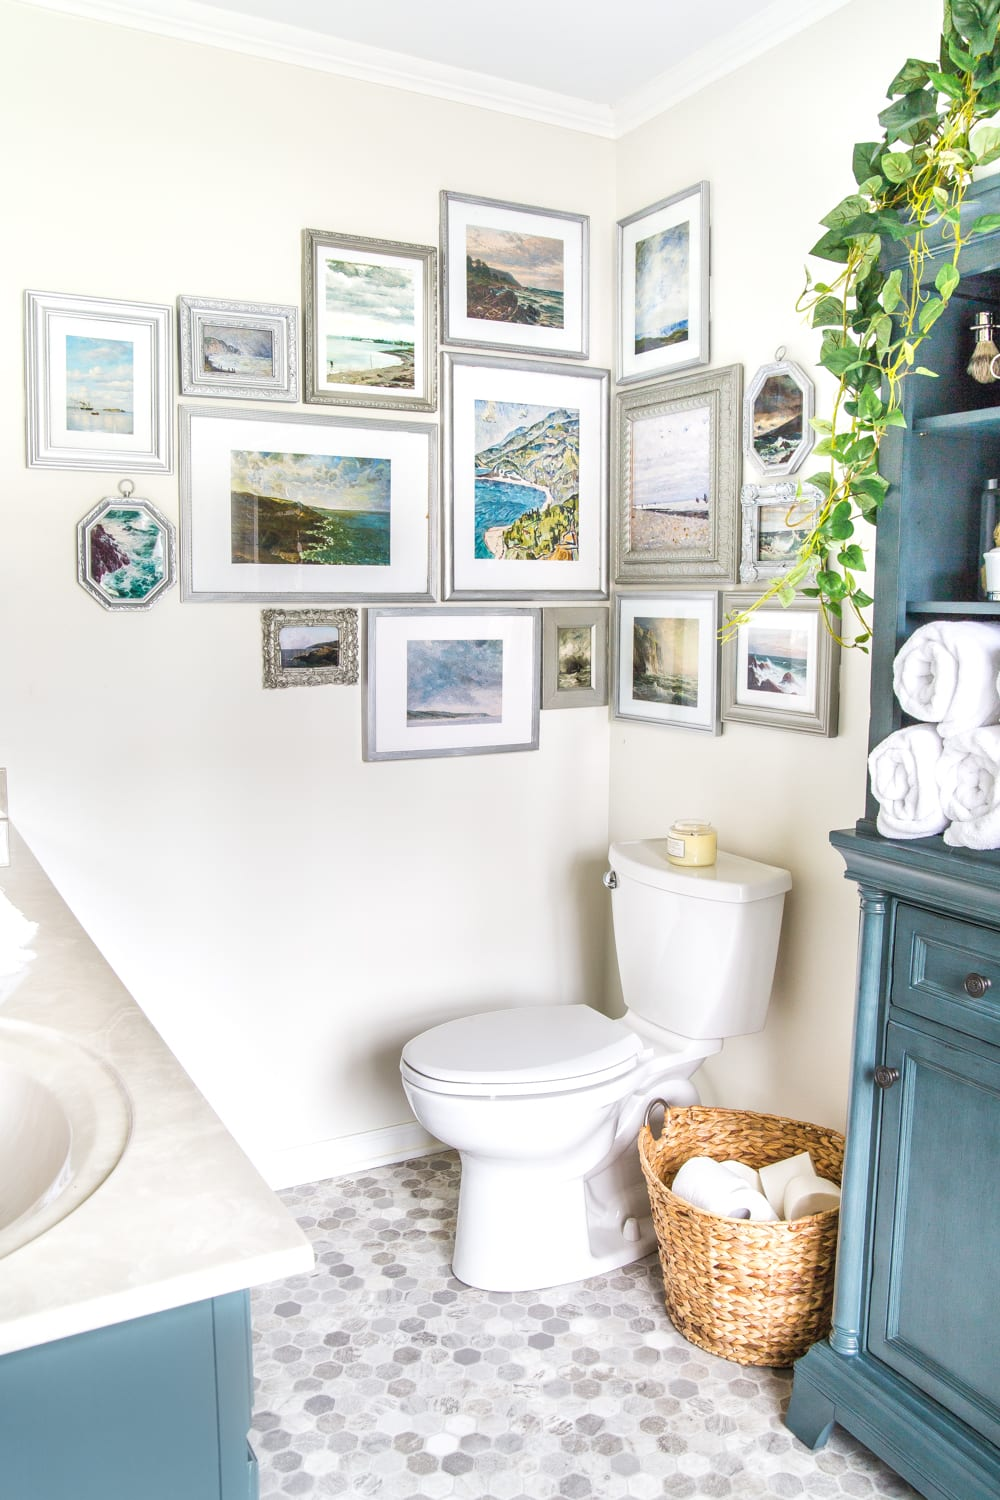 A free printable set of a coastal gallery wall featuring antique ocean paintings and how to frame them inexpensively with thrifted finds. #coastaldecor #gallerywall #bathroomart #bathroomwall #bathroomdecor #coastalart